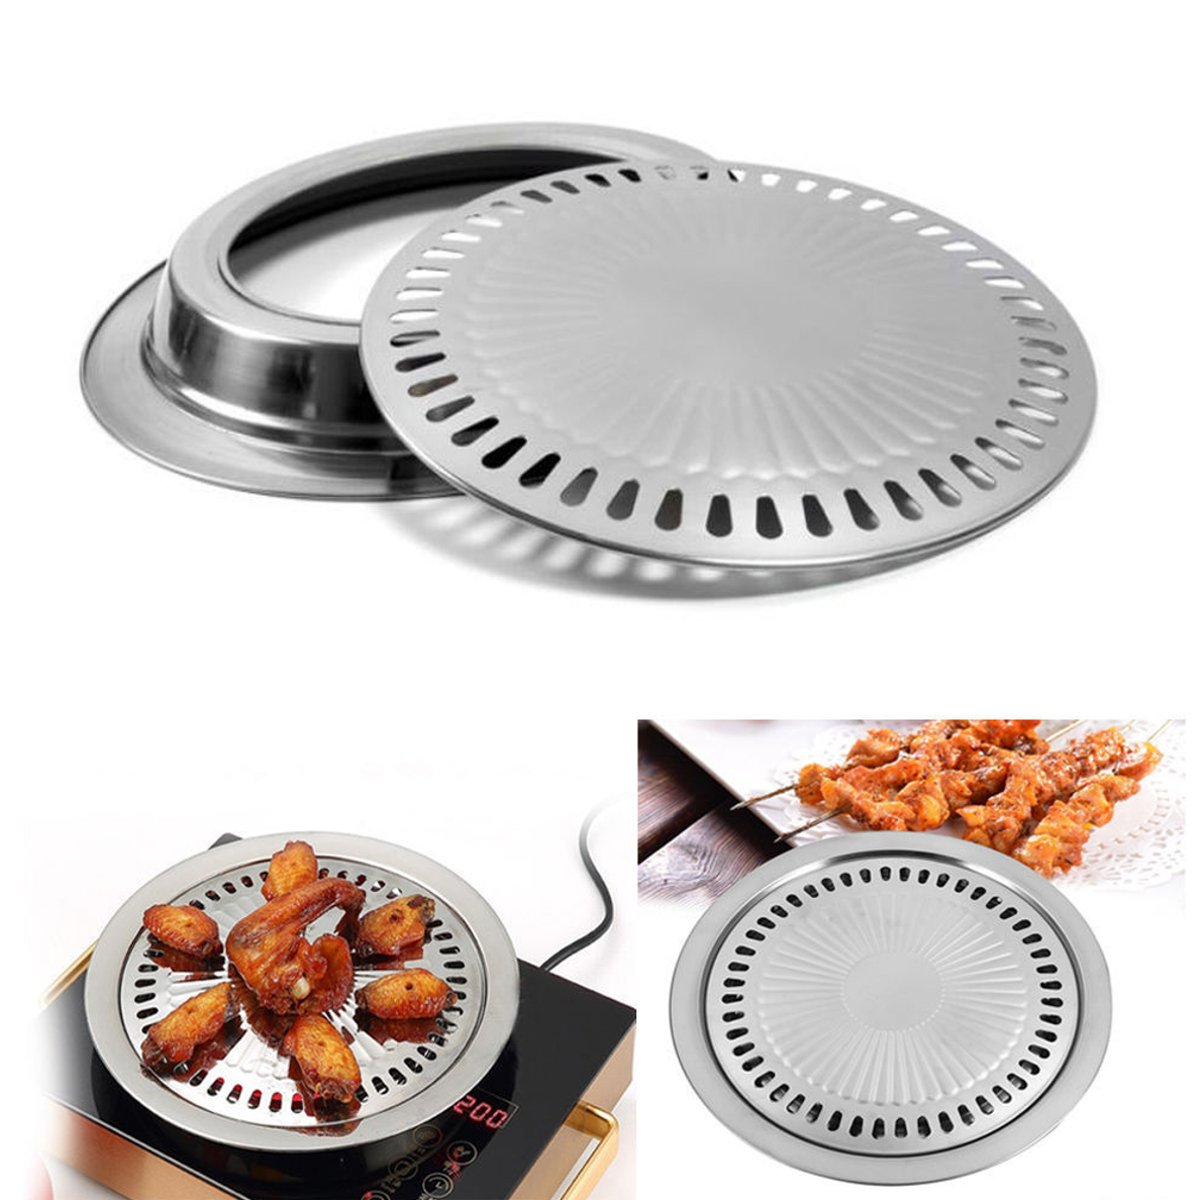 Korean Stovetop, Janolia Stainless Steel Non-Stick Roasting Round Barbecue Grill Pan for Indoor Outdoor BBQ, Cooking Delicious Roasted Food